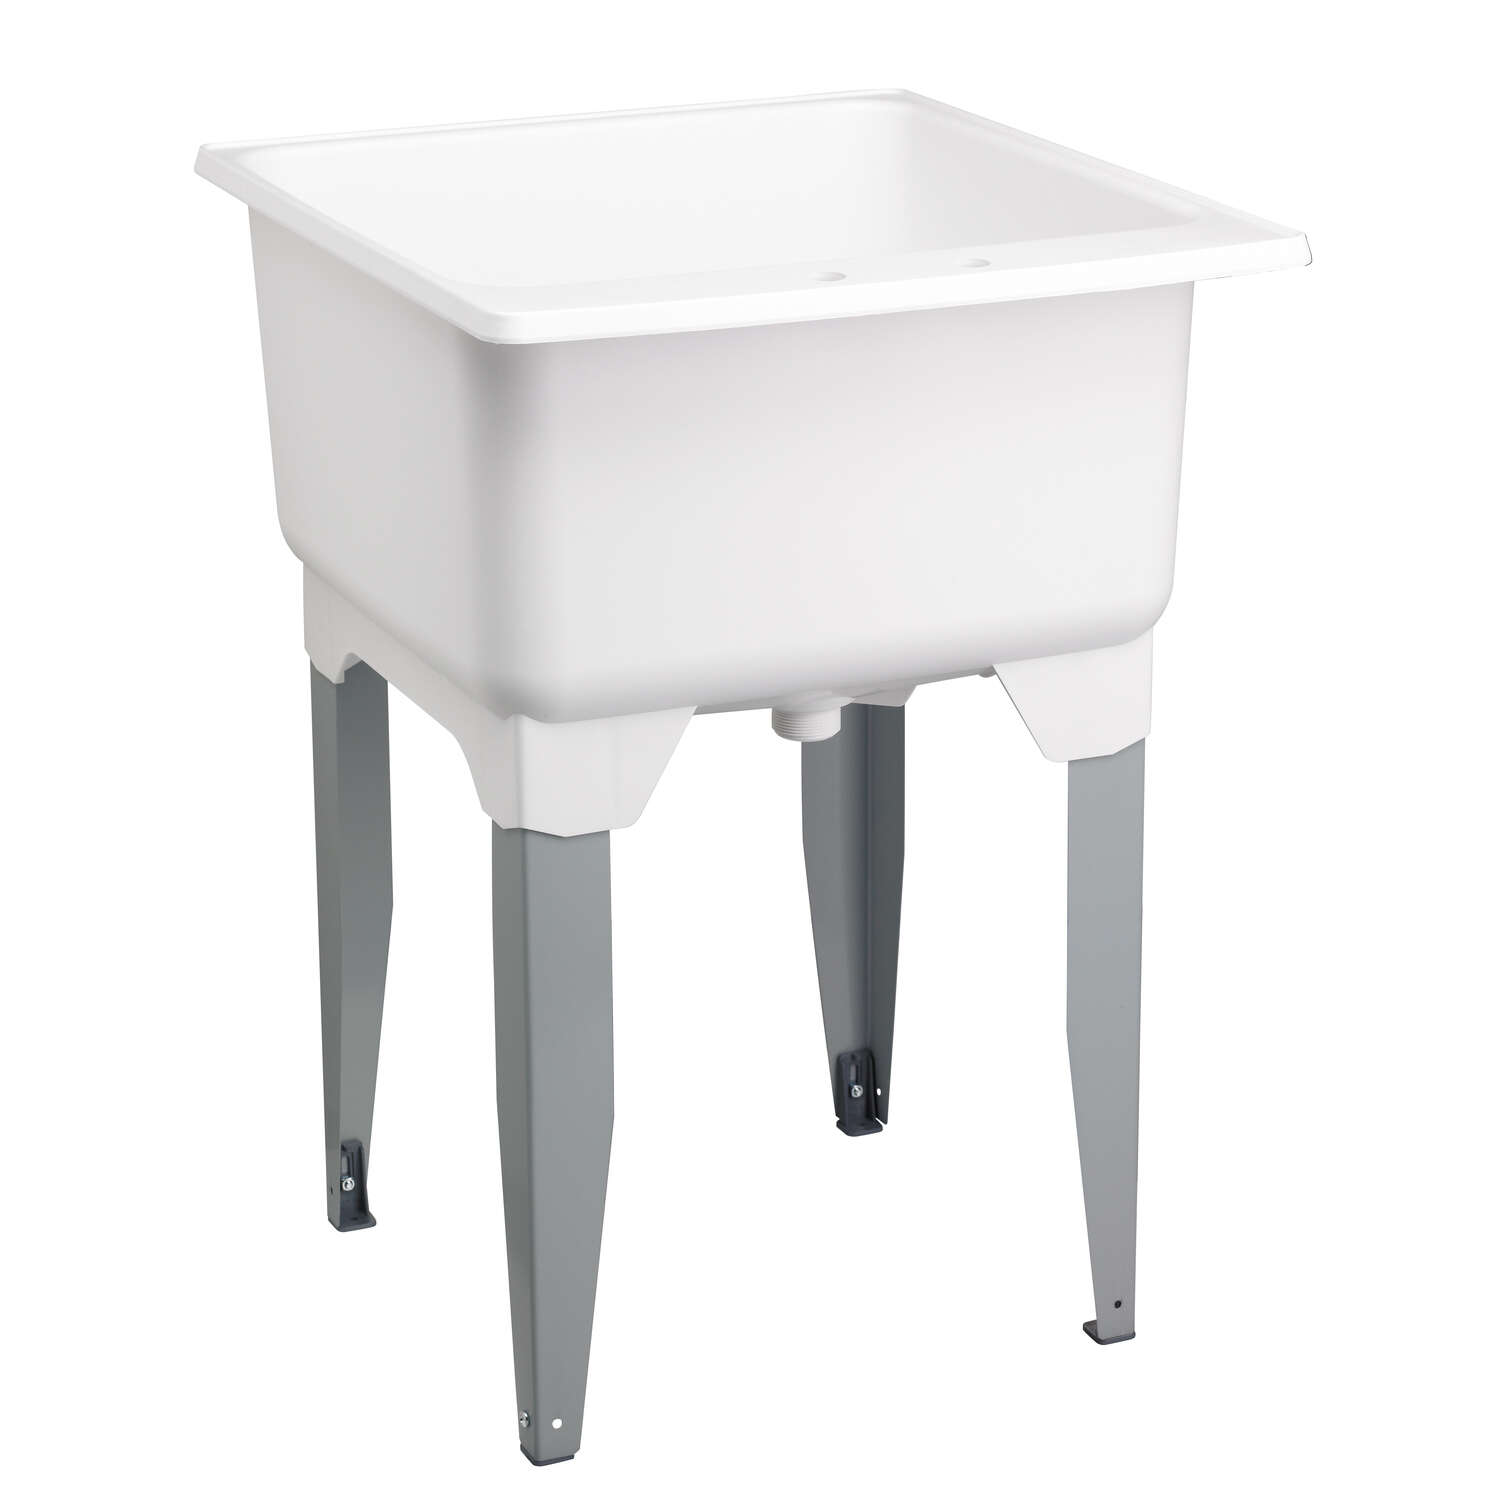 Mustee Laundry Tub Single Bowl 34 in. x 23 in. x 25 in. 20 gal.